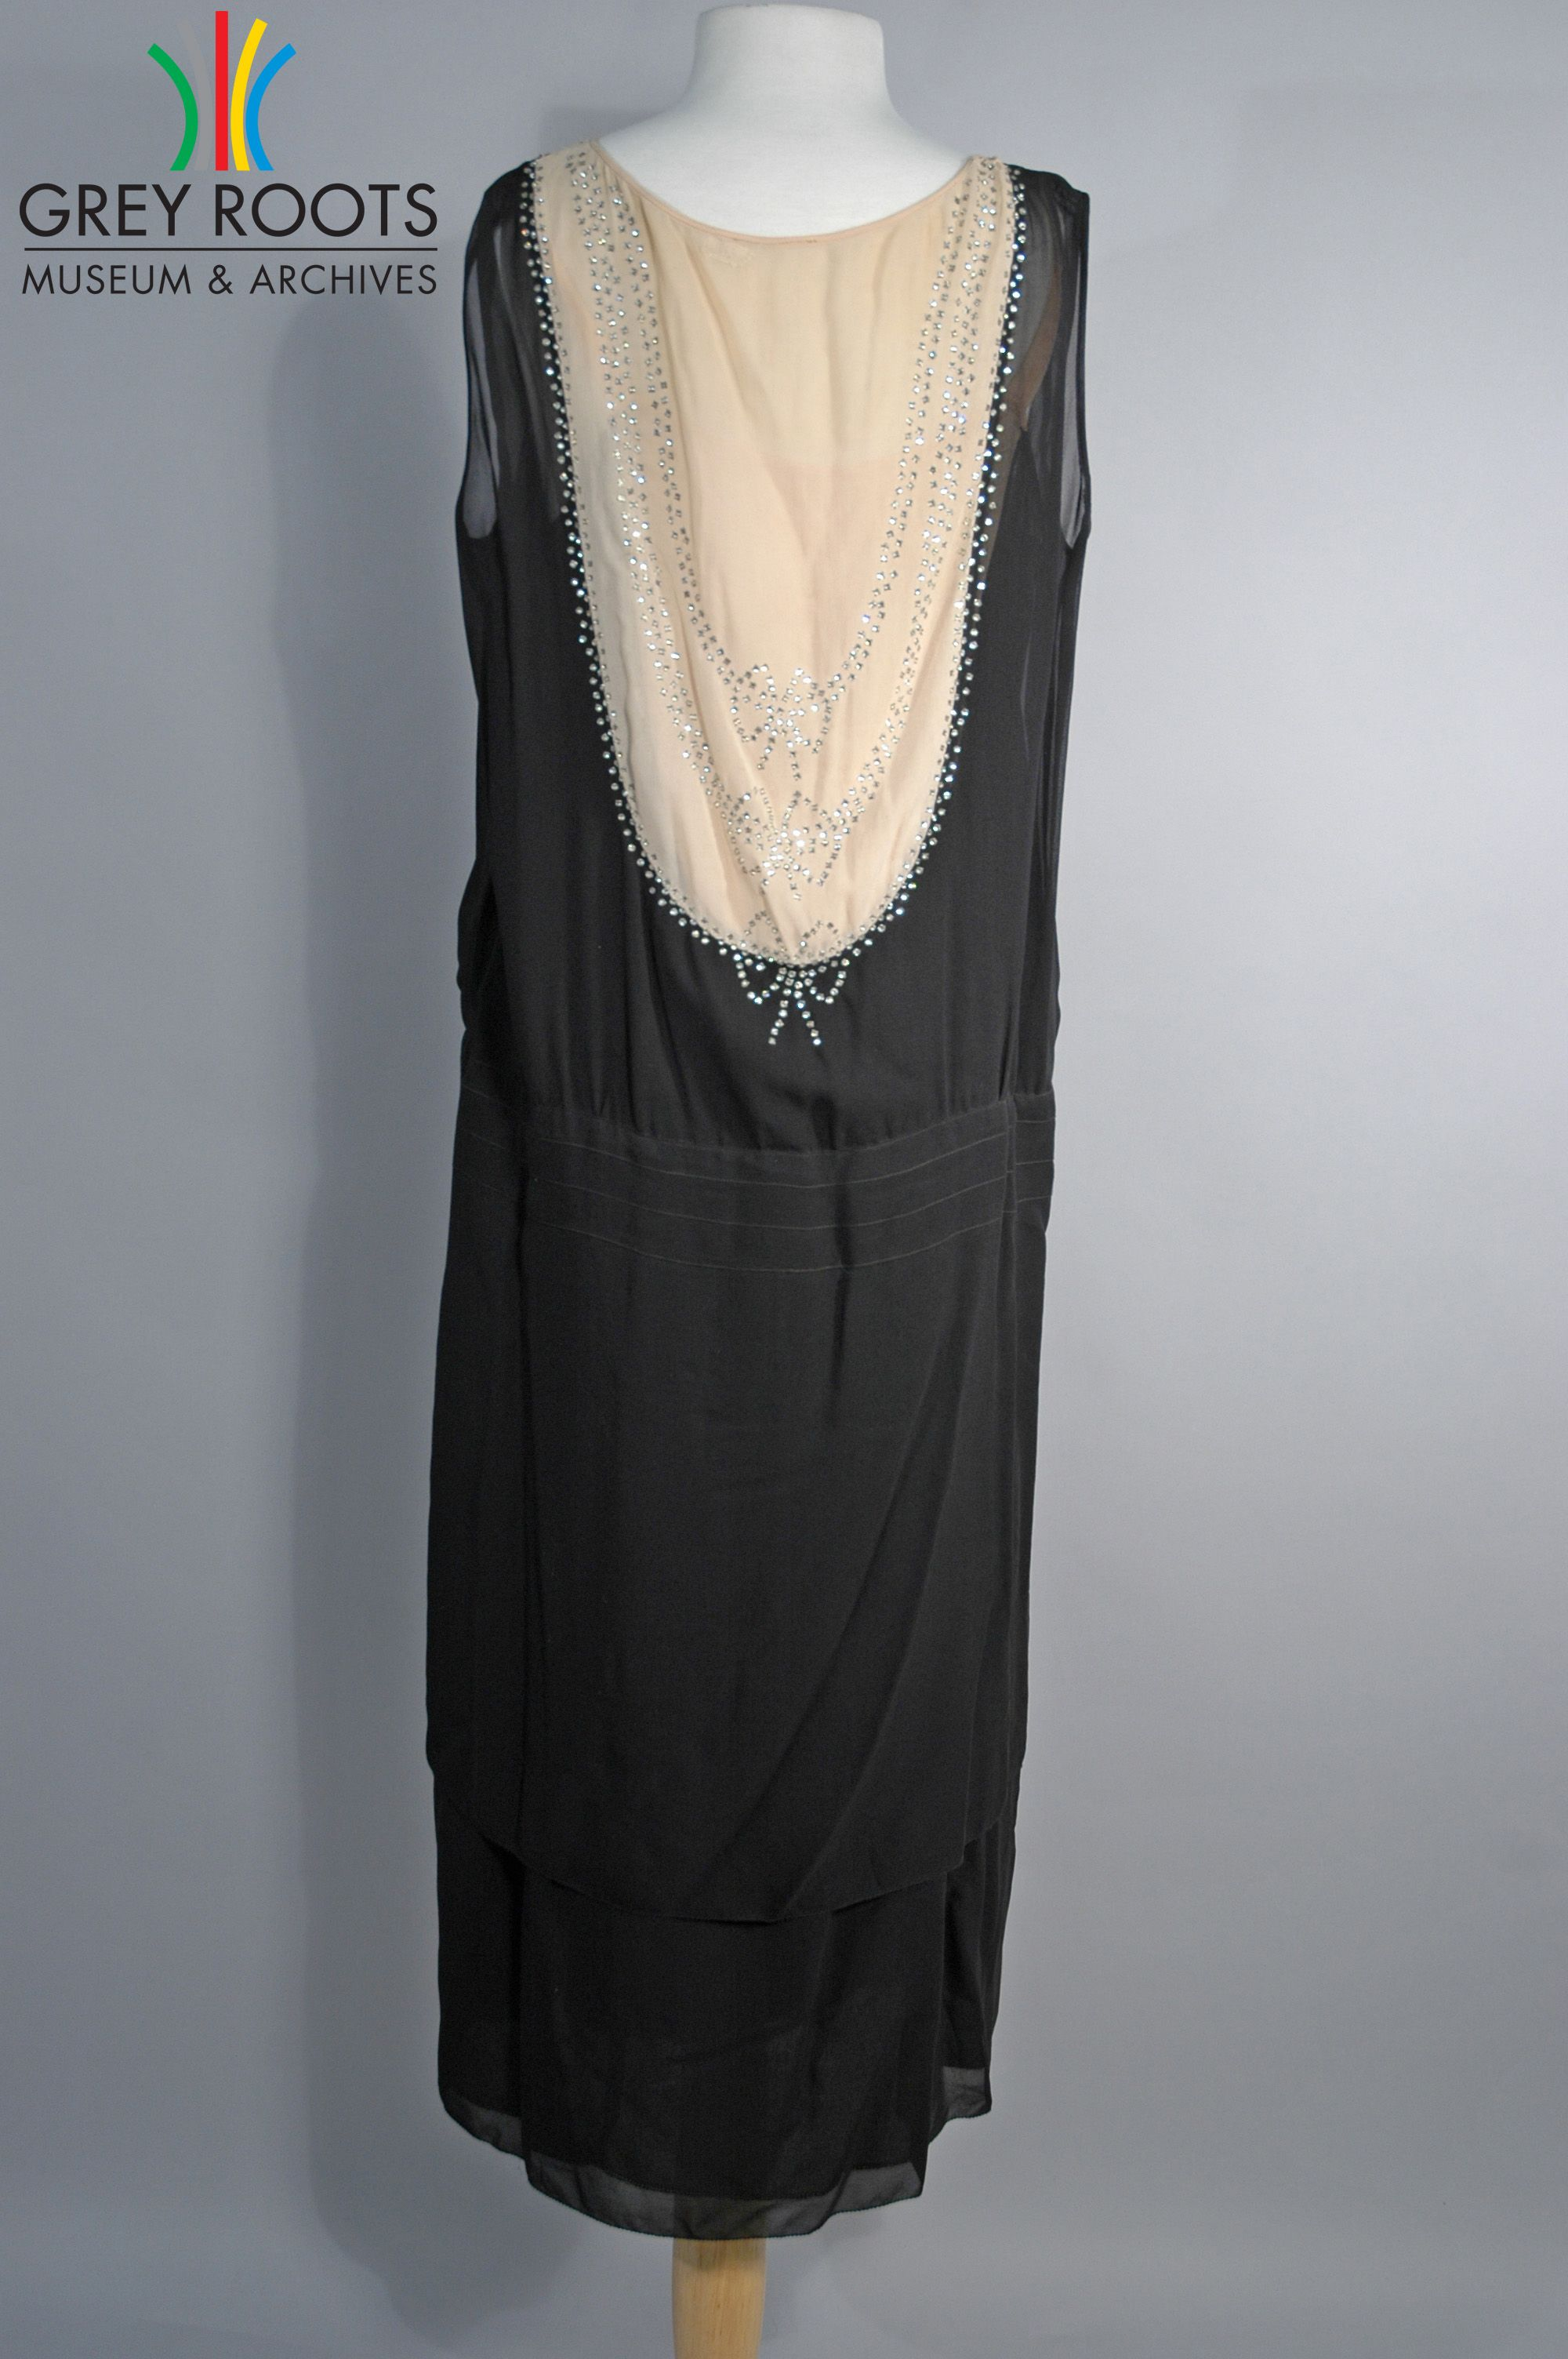 A black and beige beaded sleeveless georgette cocktail dress it